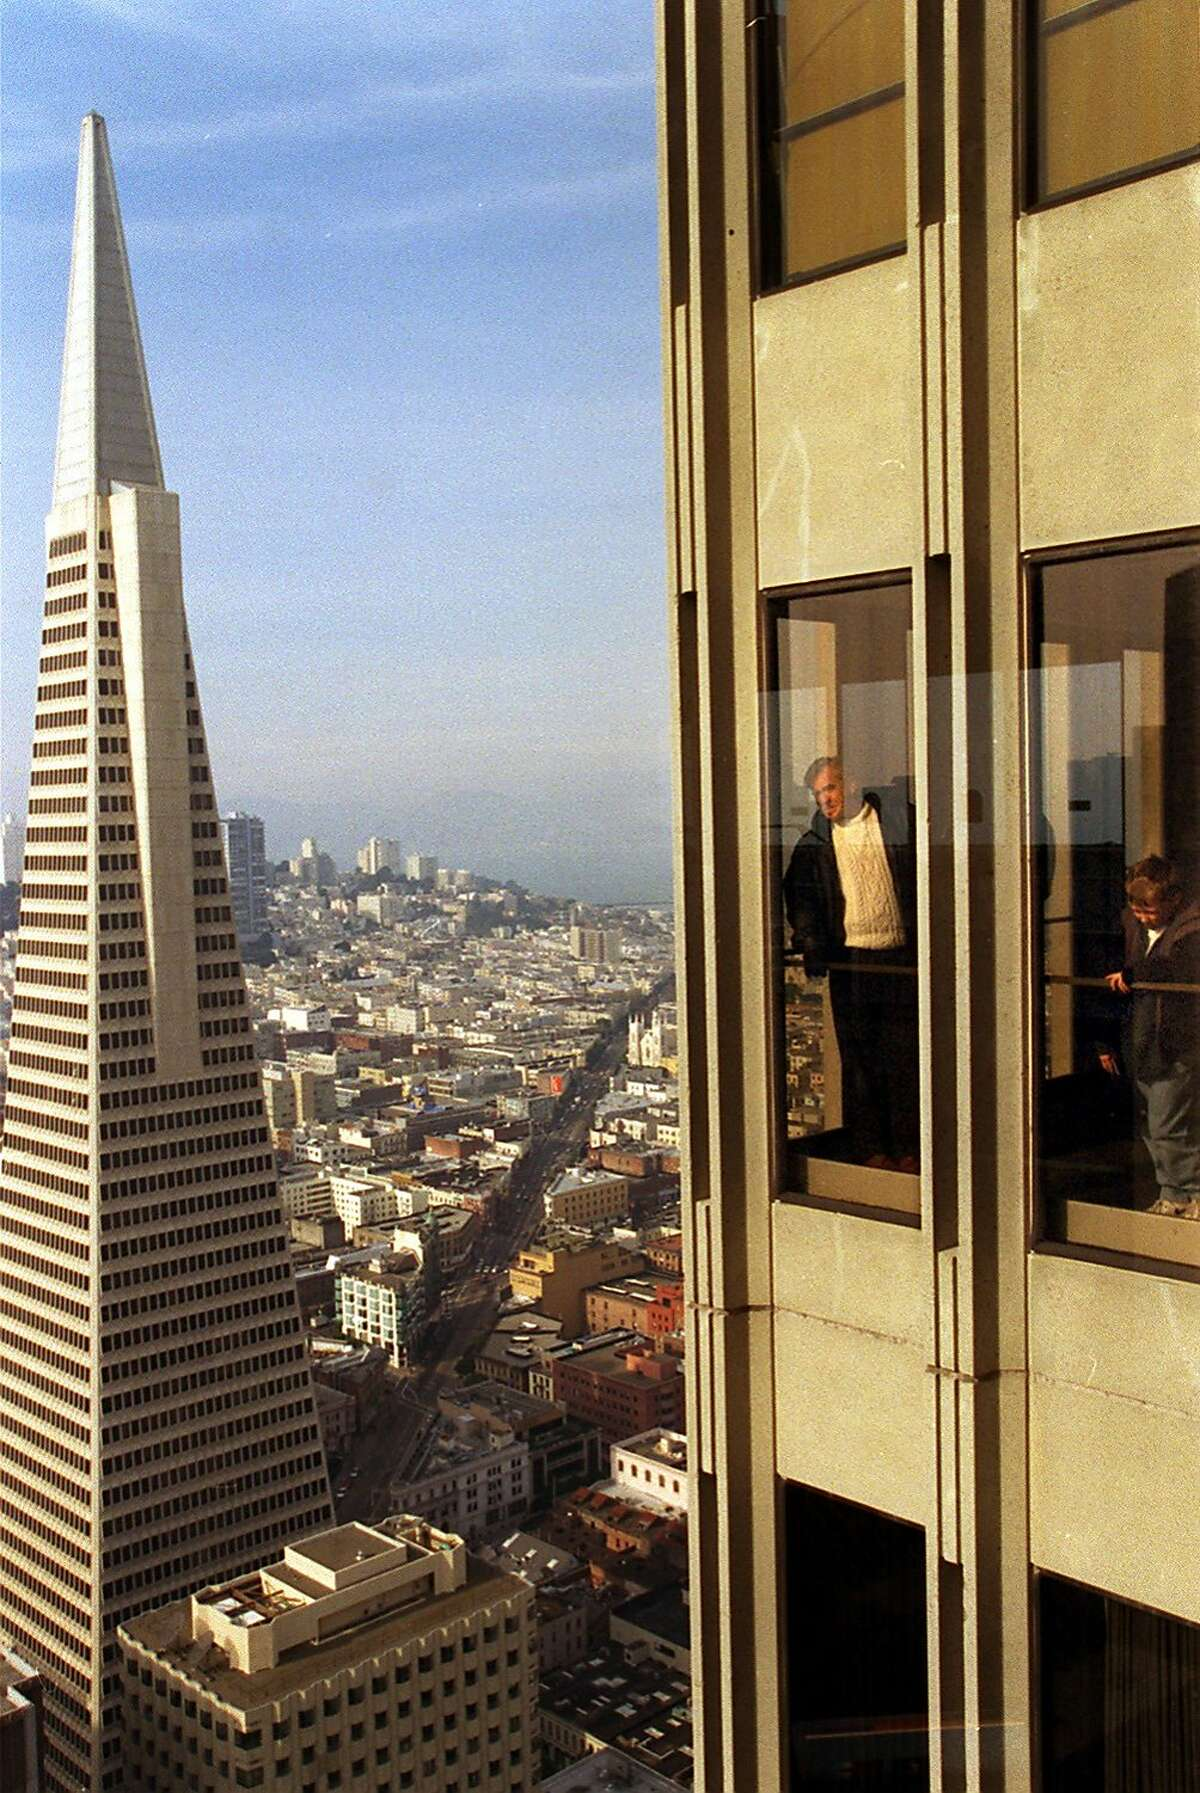 SKYDECK/C/24DEC98/MN/RW Marty Provost and his son James, 10, of San Ramon look out windows of Skydeck with the Transamerica Pyramid in the background at the Embarcadero Center 1 in downtown San Francisco. BY ROBIN WEINER/THE CHRONICLE